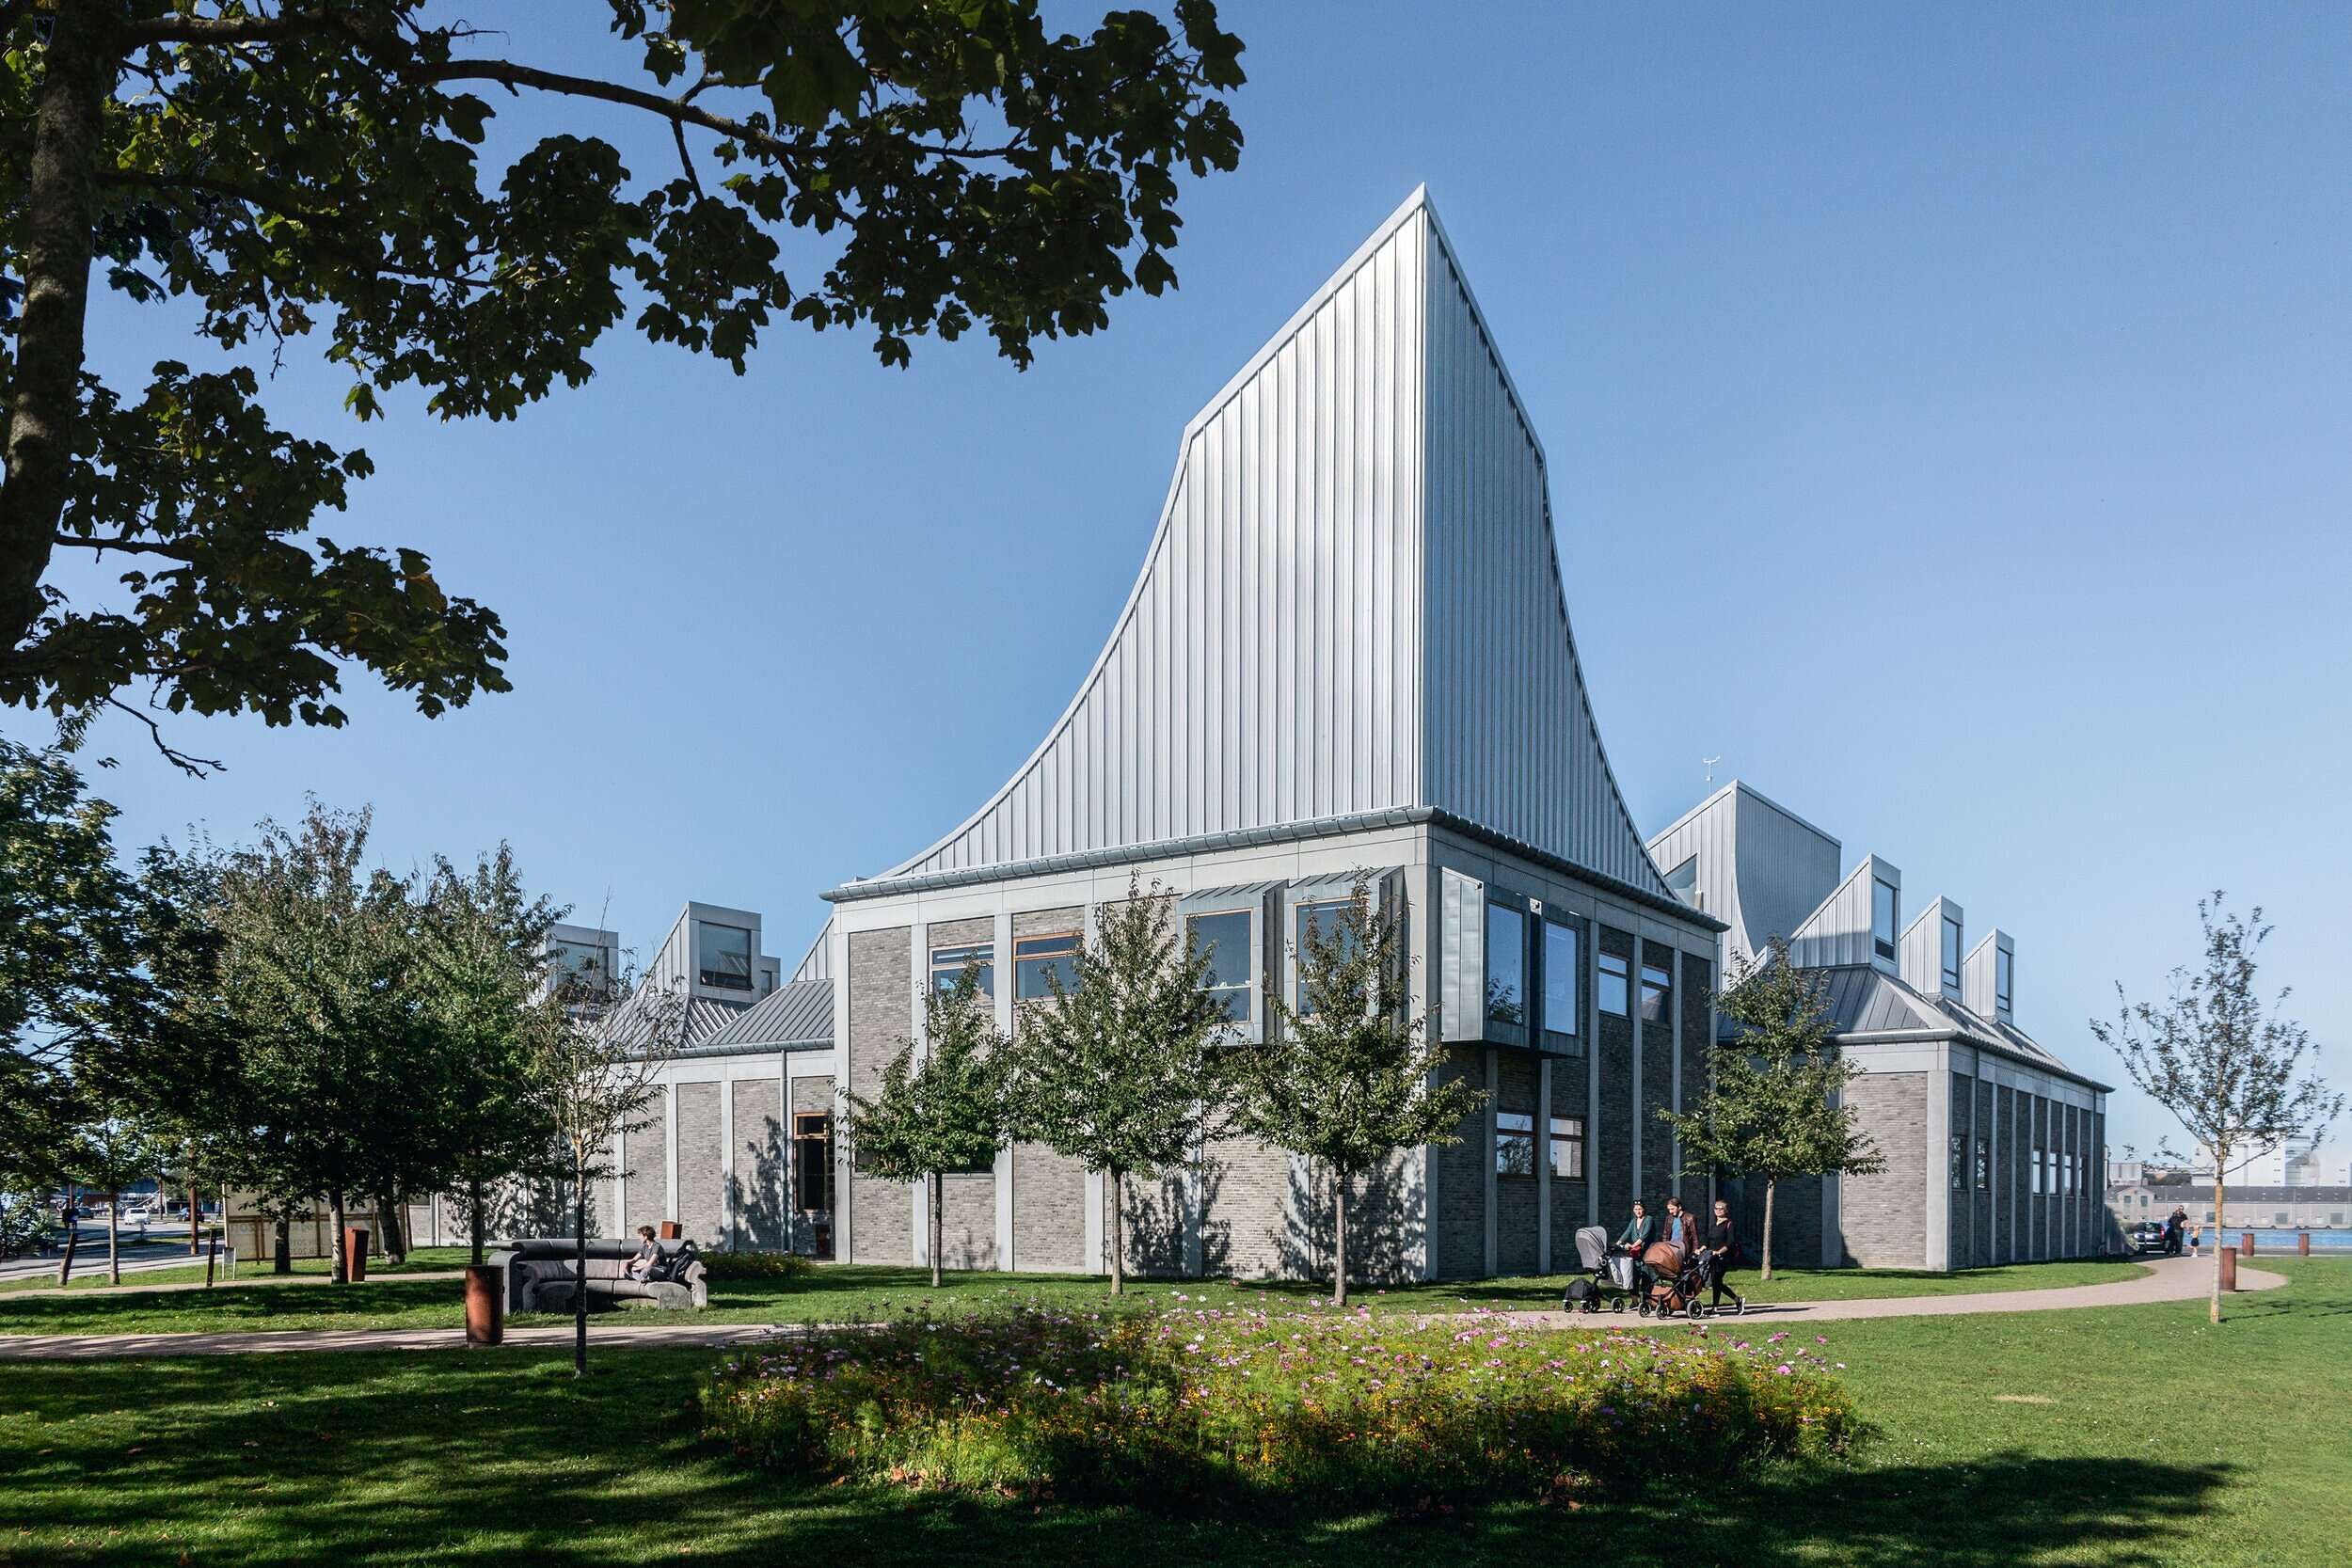 The Utzon Center in Aalborg, photography by Mike Dugenio-2.jpg